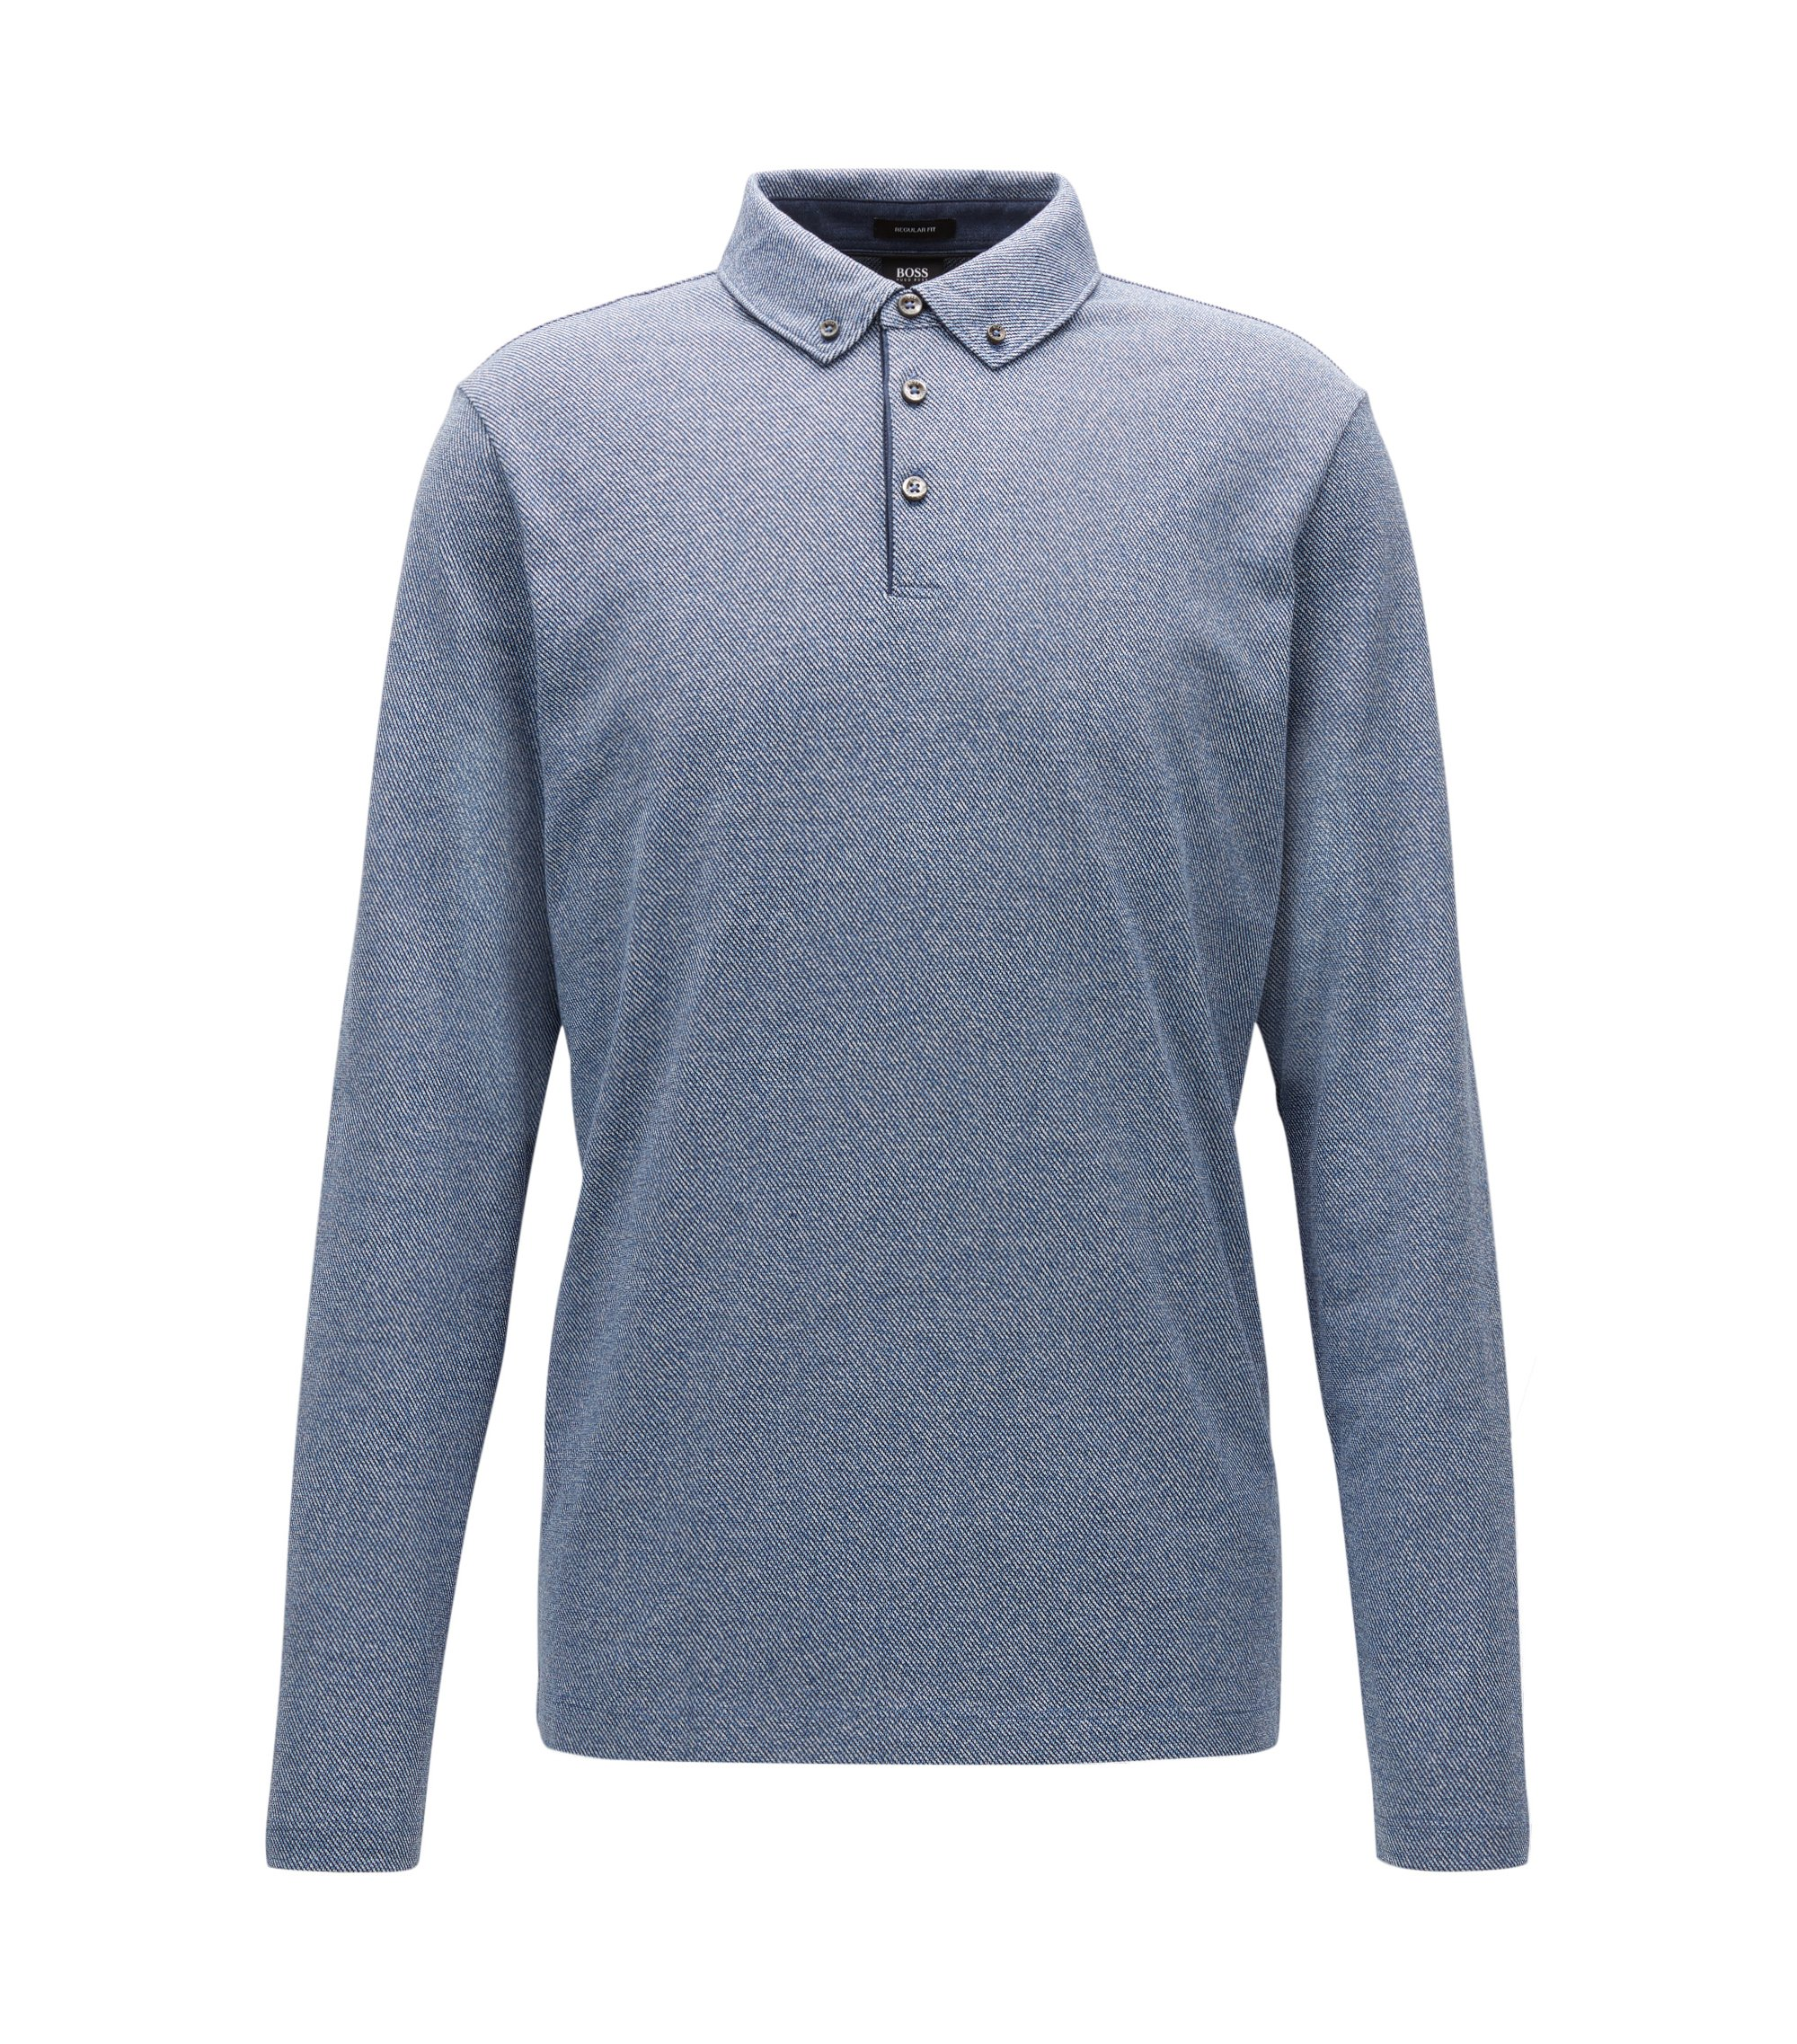 Mouline Cotton Polo Shirt, Regular FIt | Pickell, Dark Blue